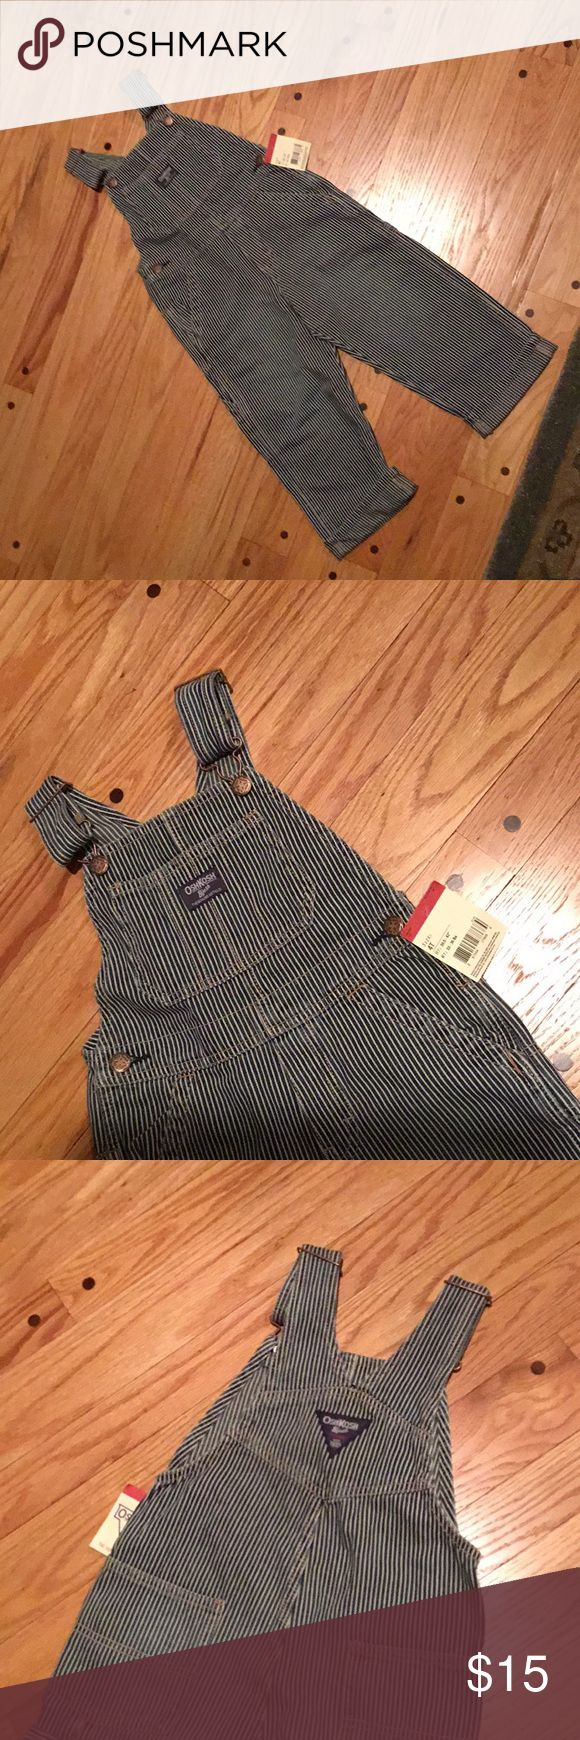 I just added this listing on Poshmark: OshKosh Carpenter Style, Railroad Stripe Overalls. #shopmycloset #poshmark #fashion #shopping #style #forsale #OshKosh B'gosh #Other